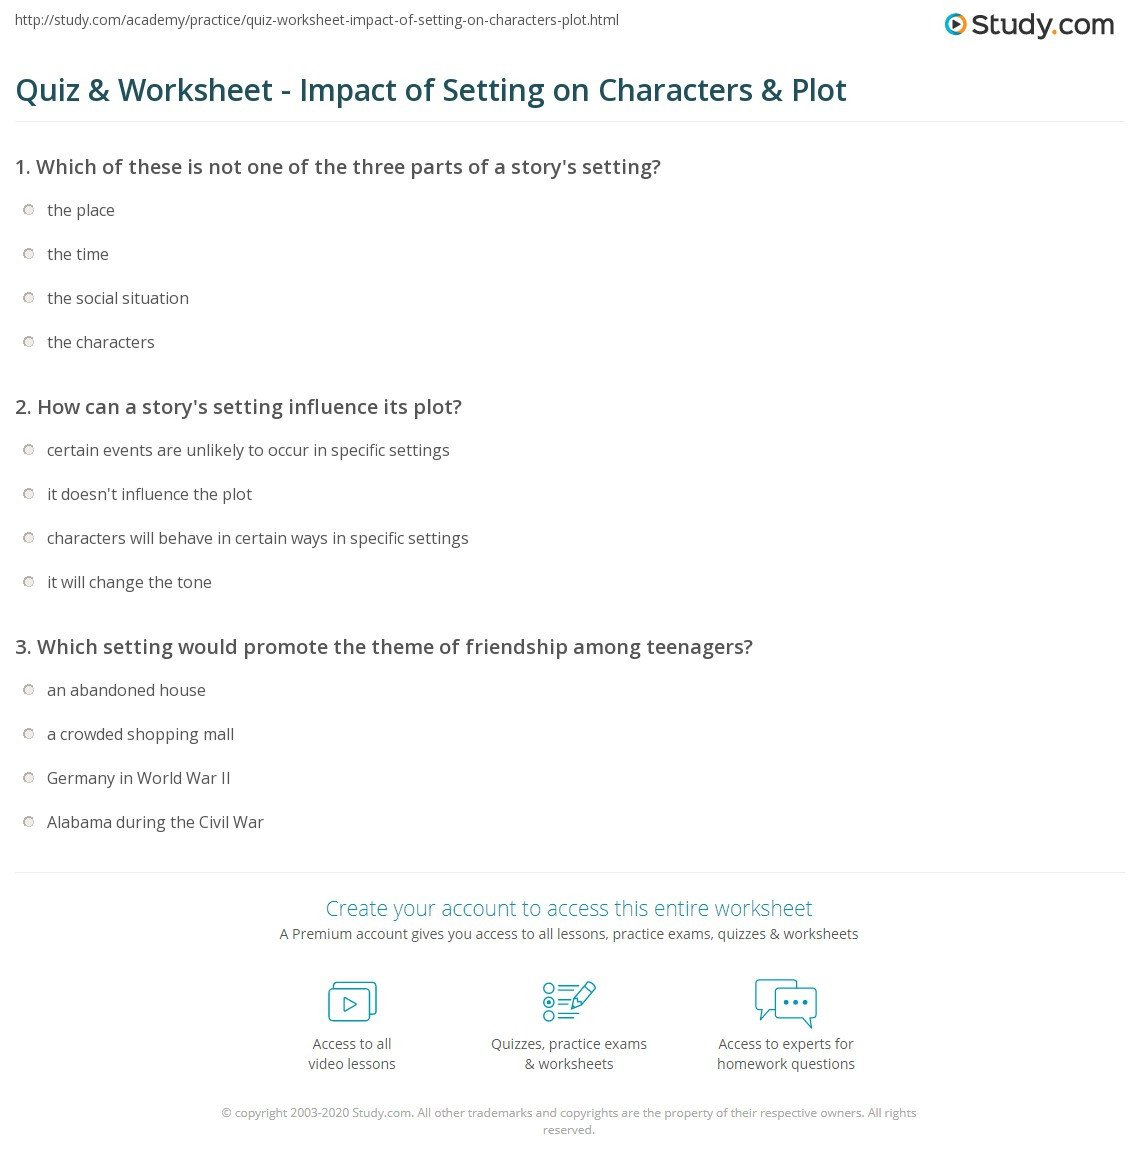 quiz worksheet impact of setting on characters plot